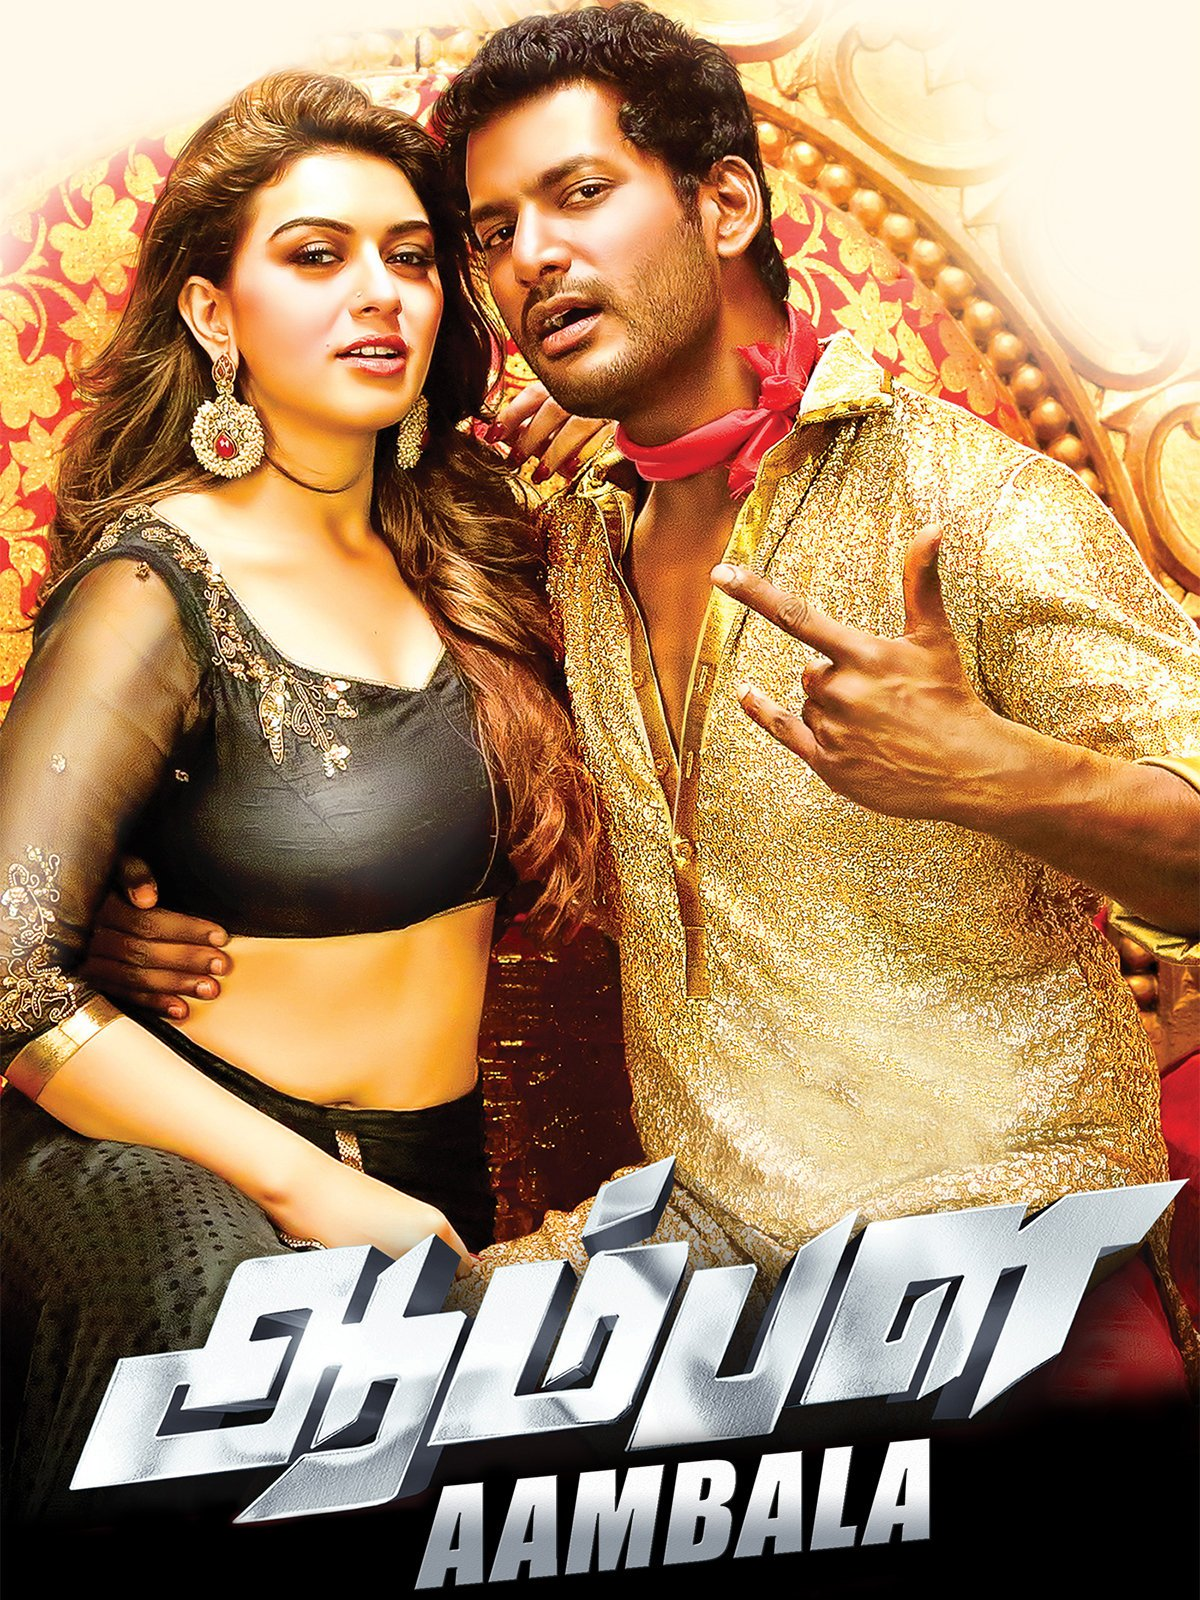 Aambala 2015 Hindi Dual Audio 510MB UNCUT HDRip ESub Download